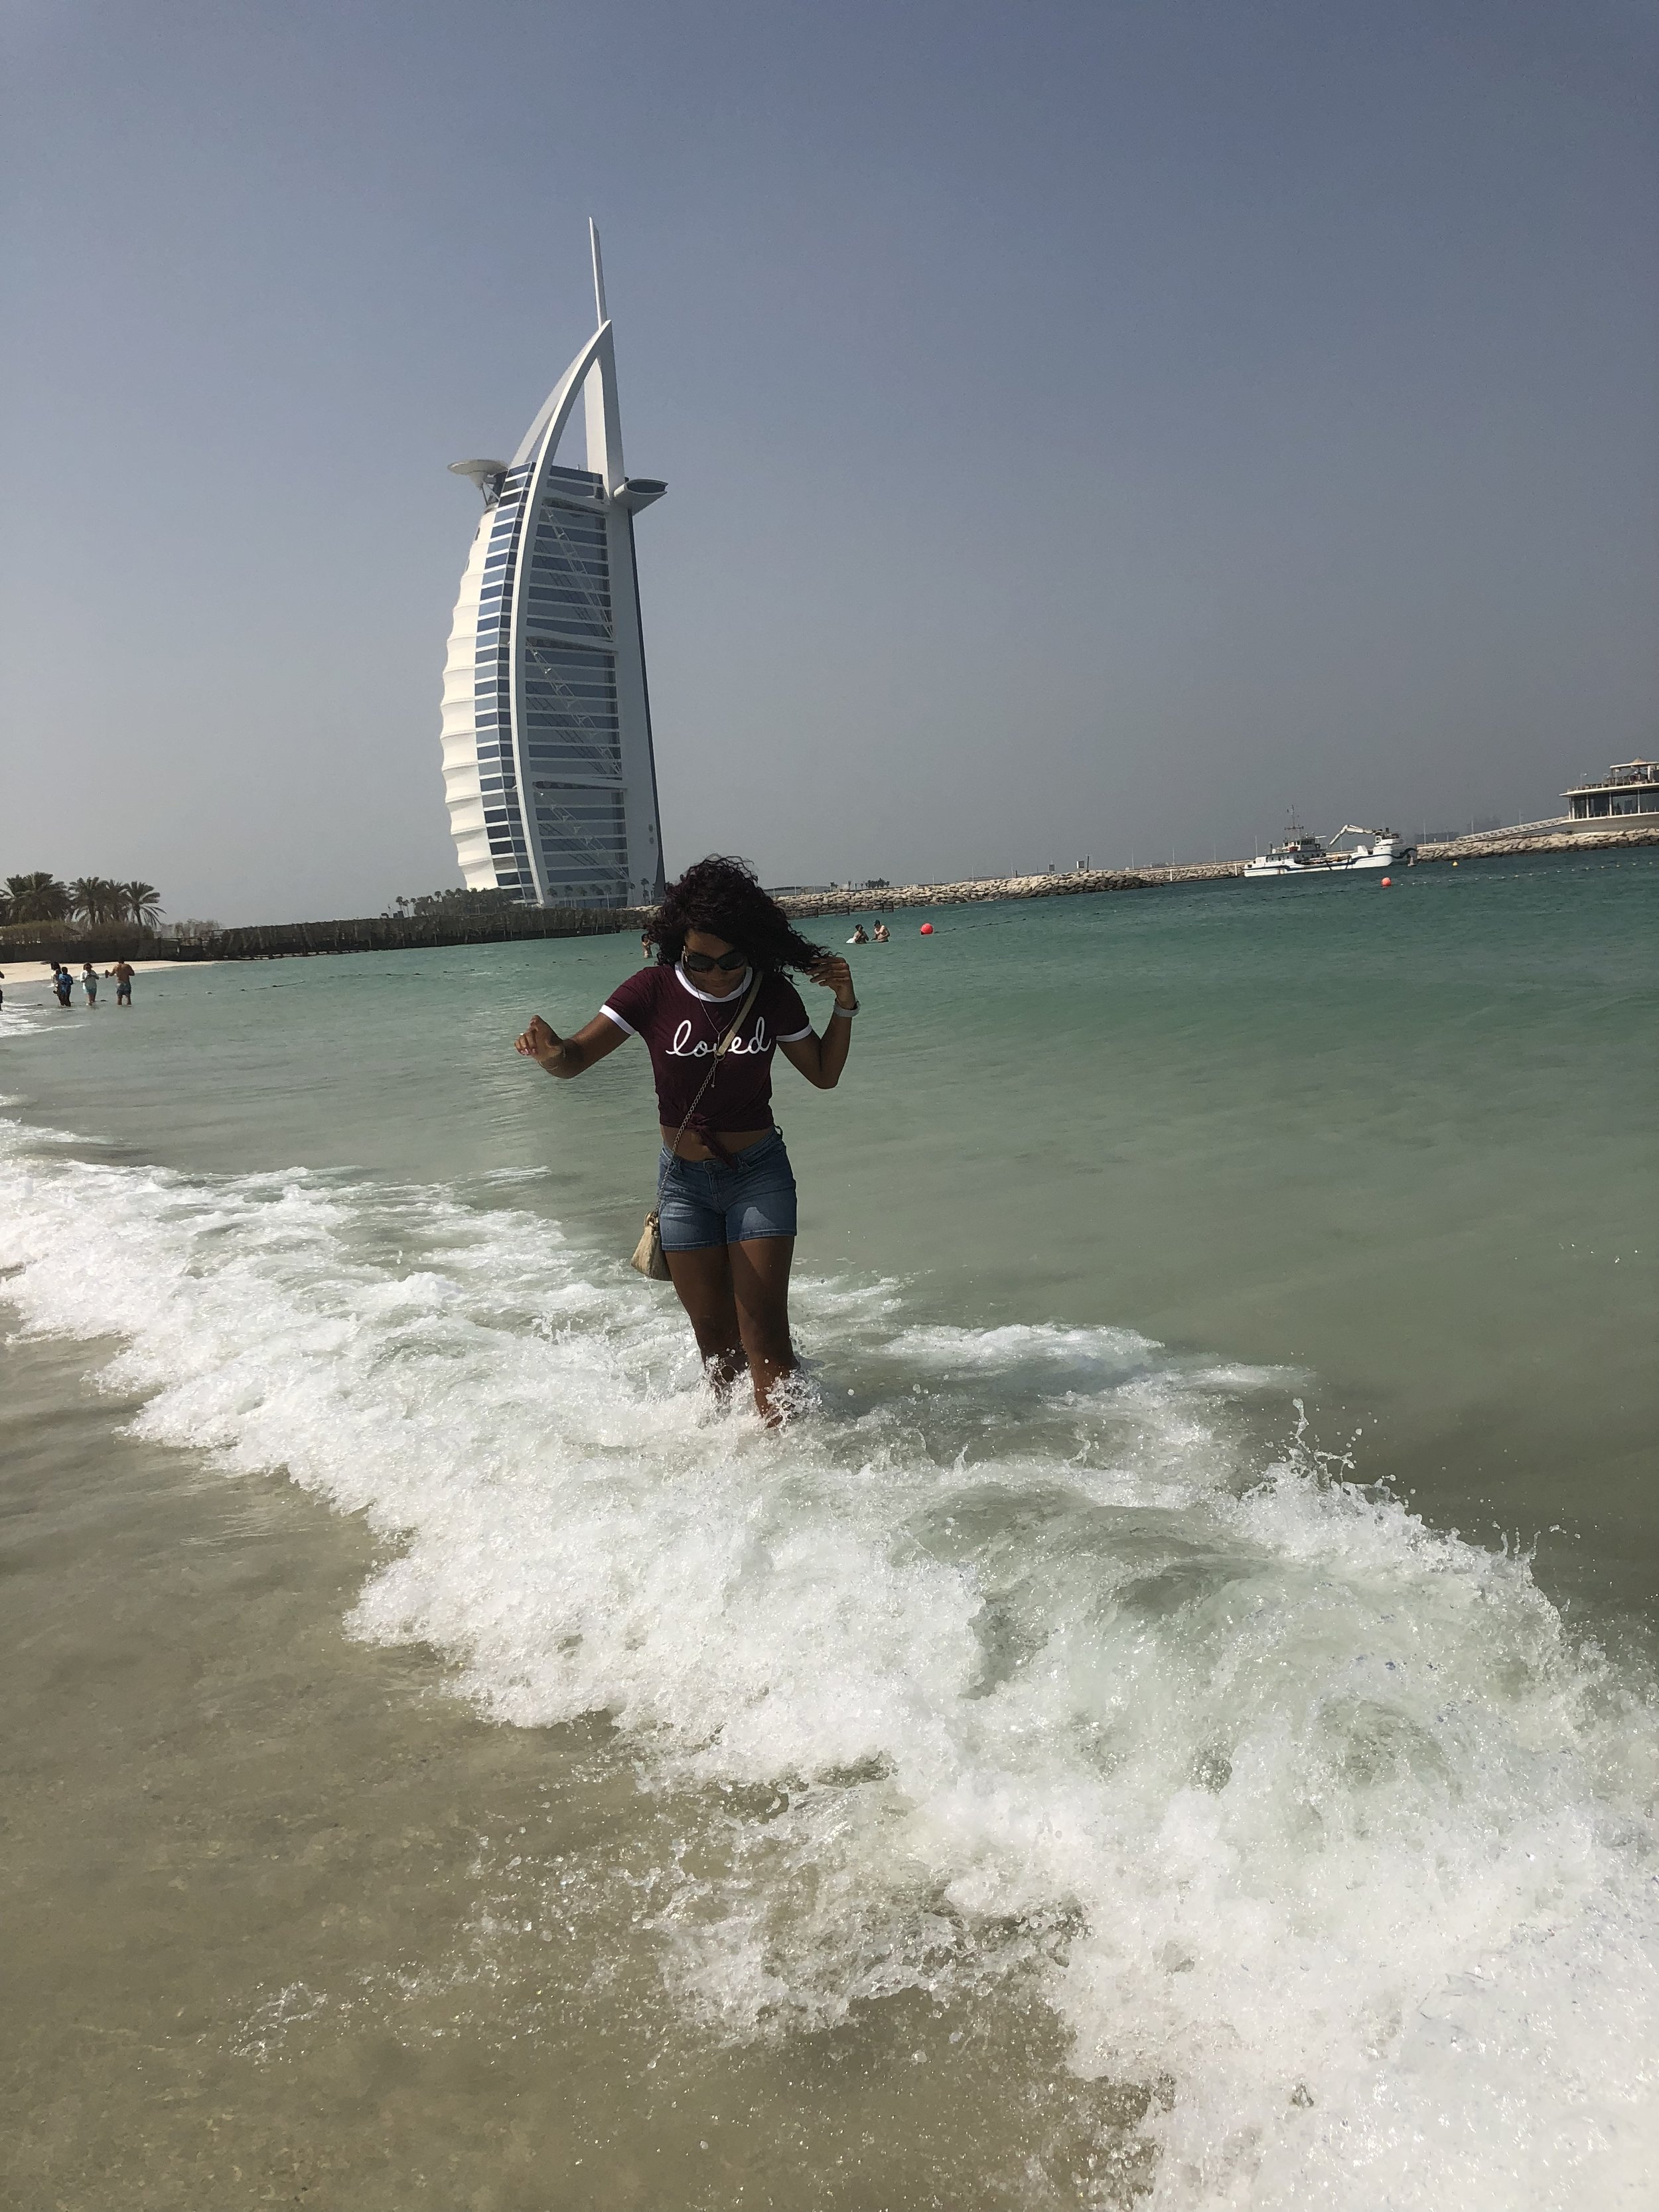 At Dubai Beach :)